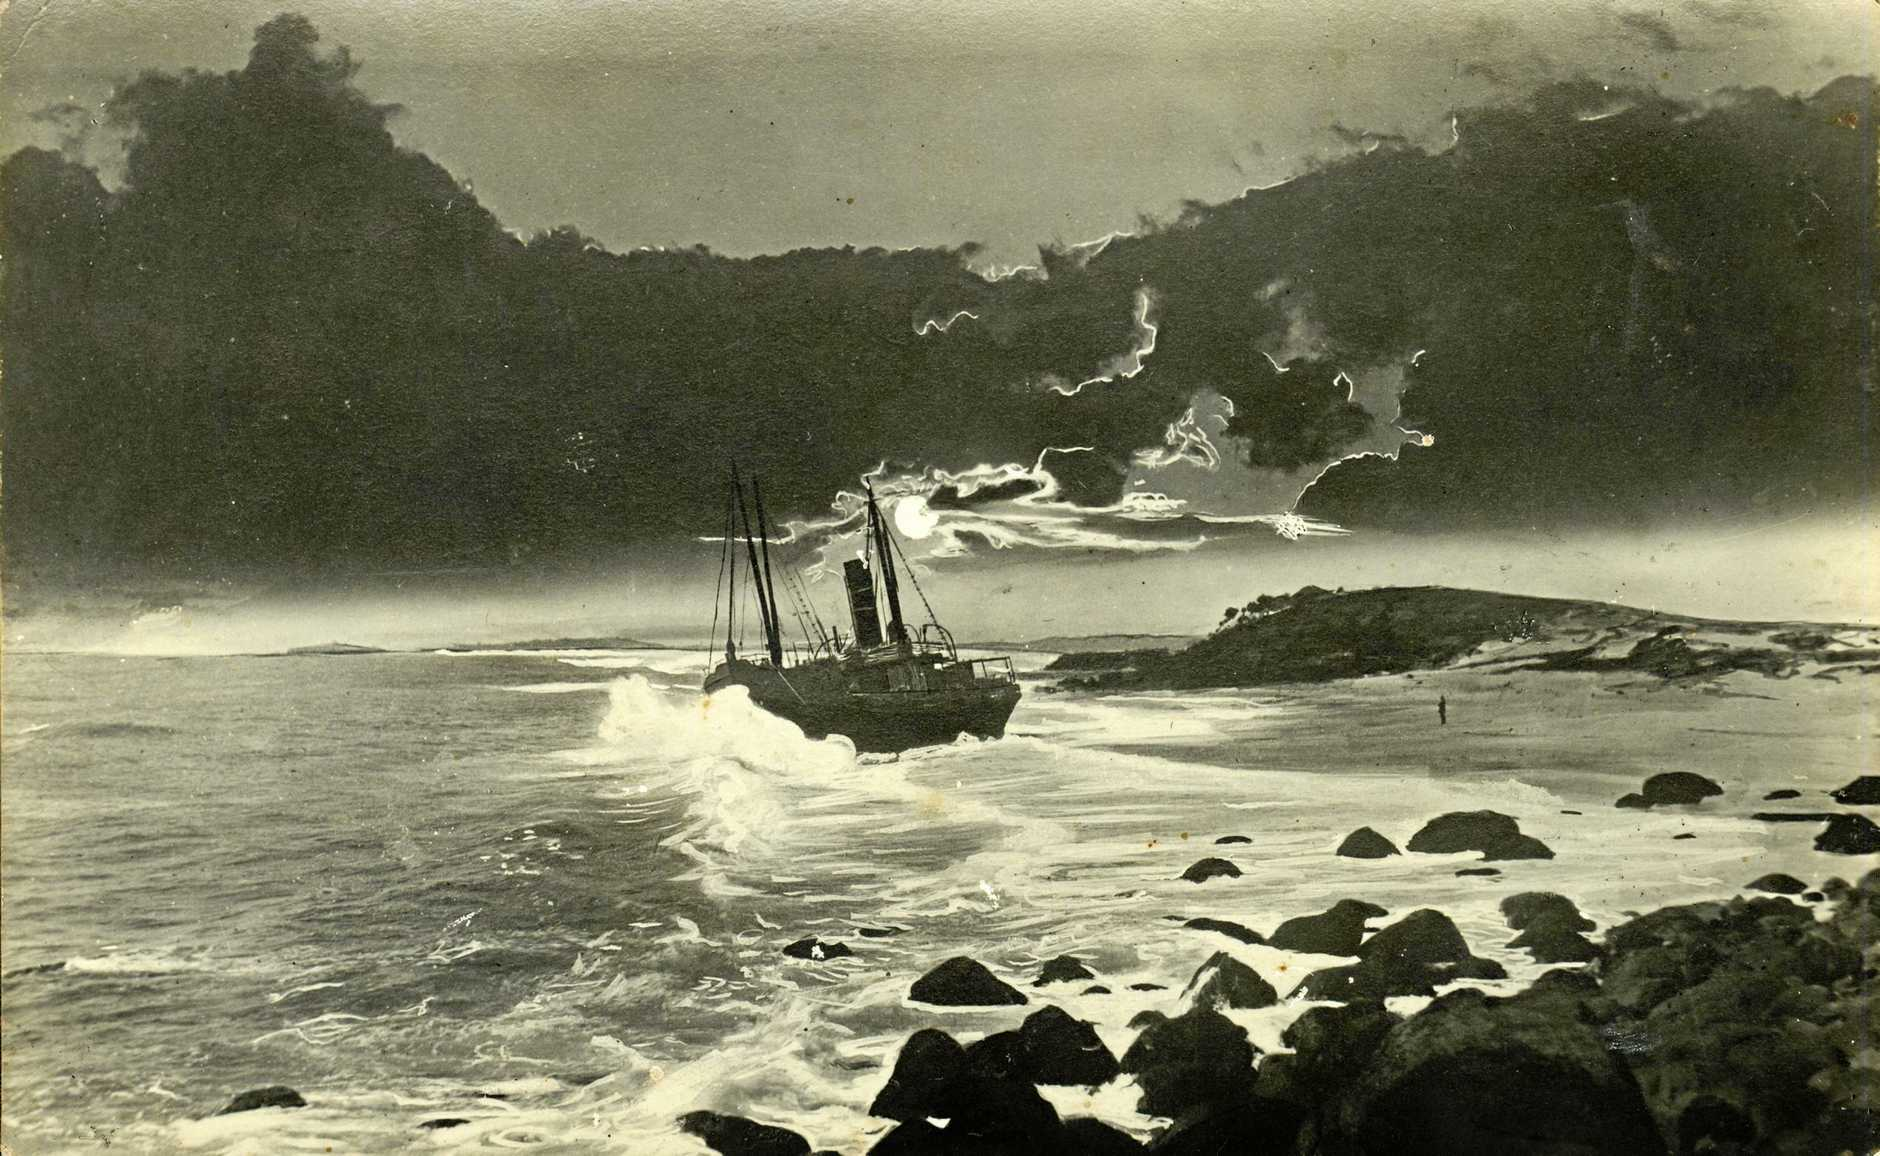 STUCK: The Duranbah aground on the beach, November 1919.